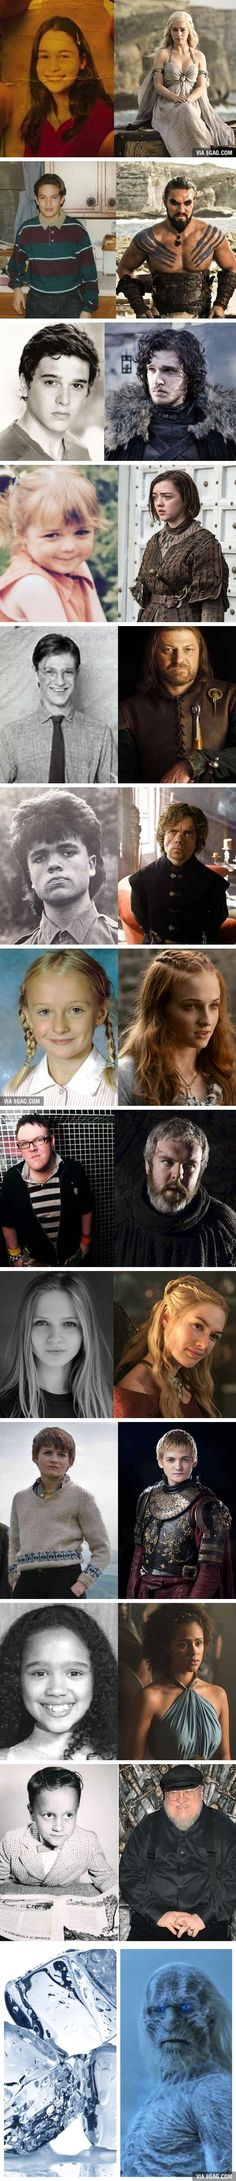 Game Of Thrones - I'm not buying that that is Lena Heady though. She can't have changed that much since childhood.